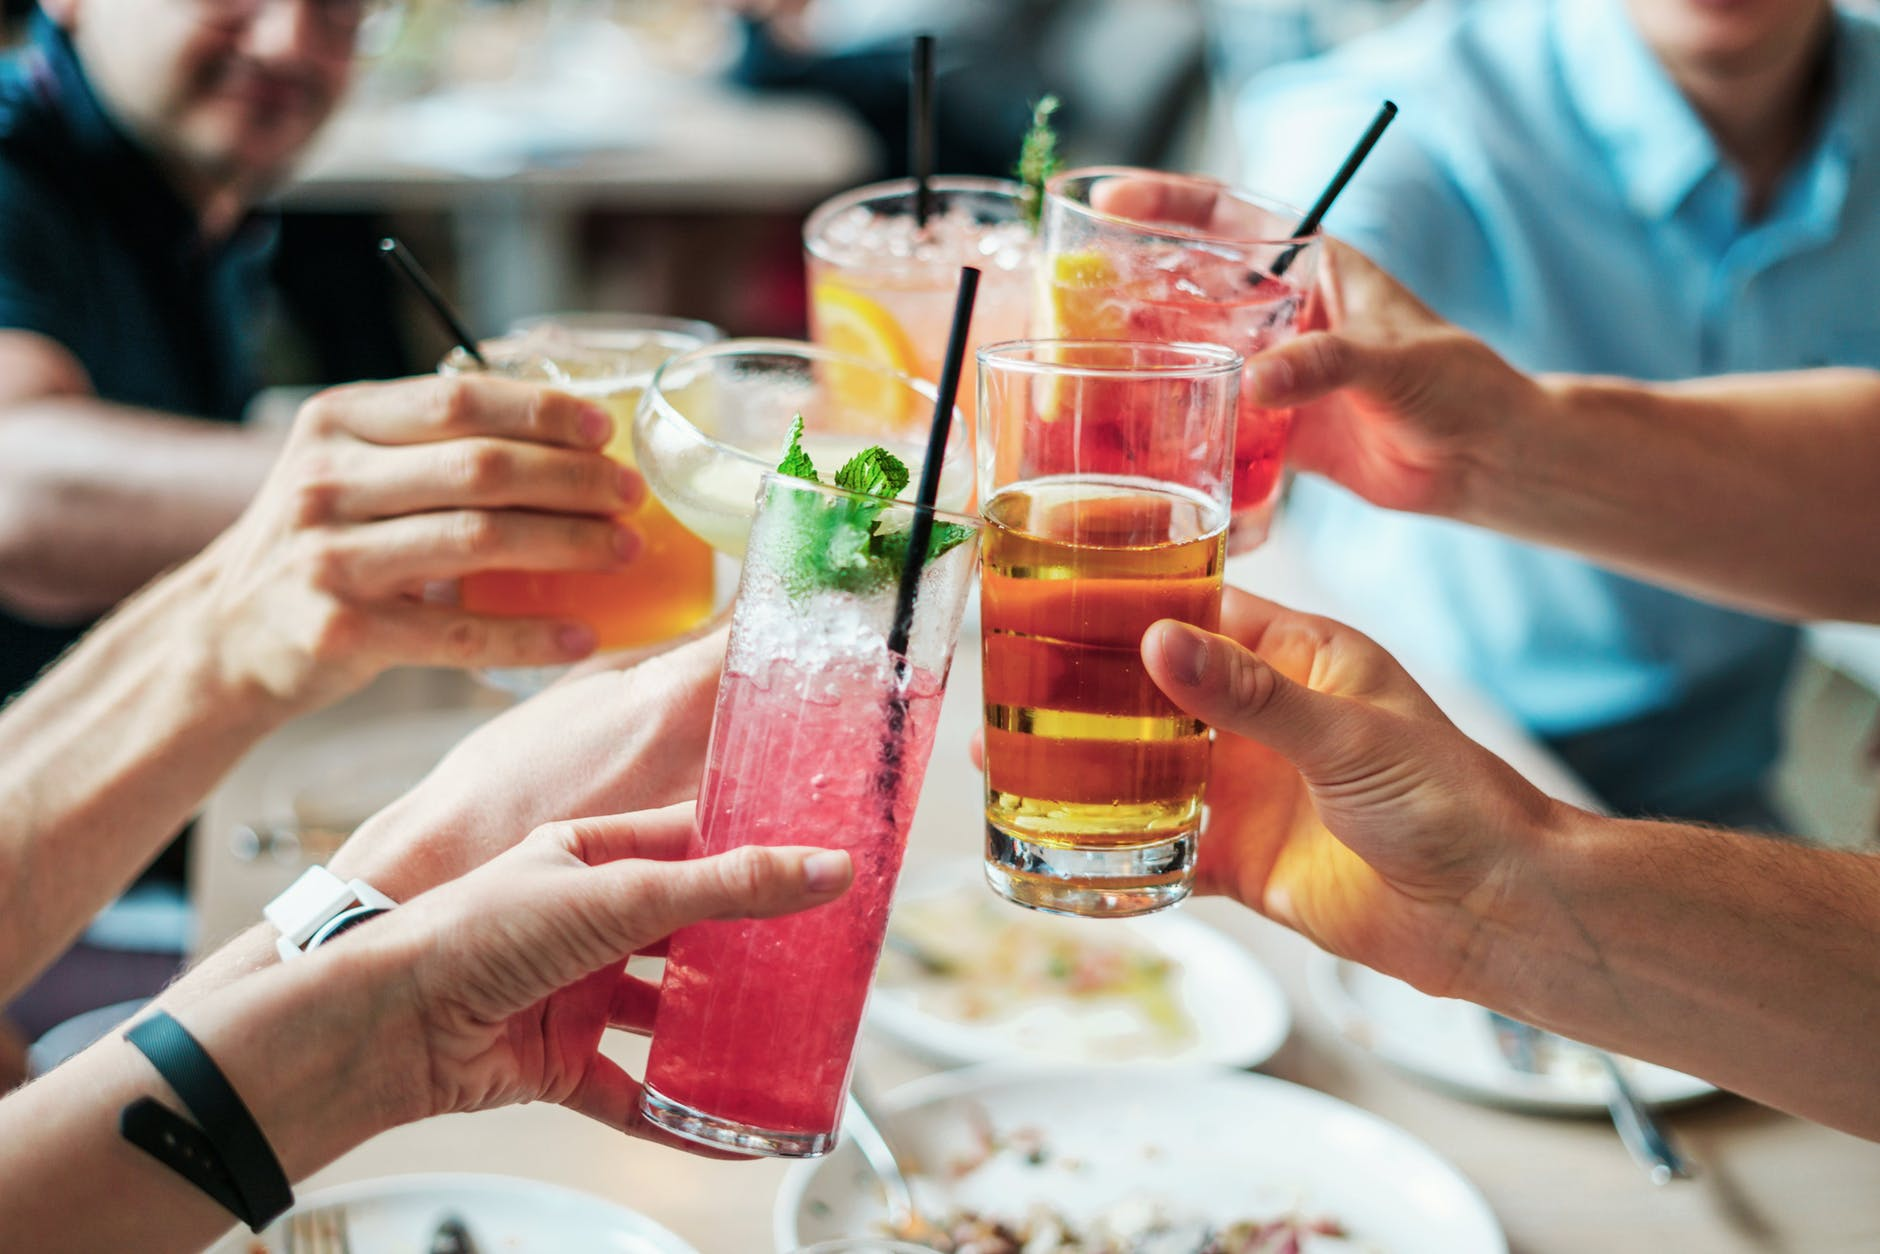 Can I drink alcohol with Prediabetes?